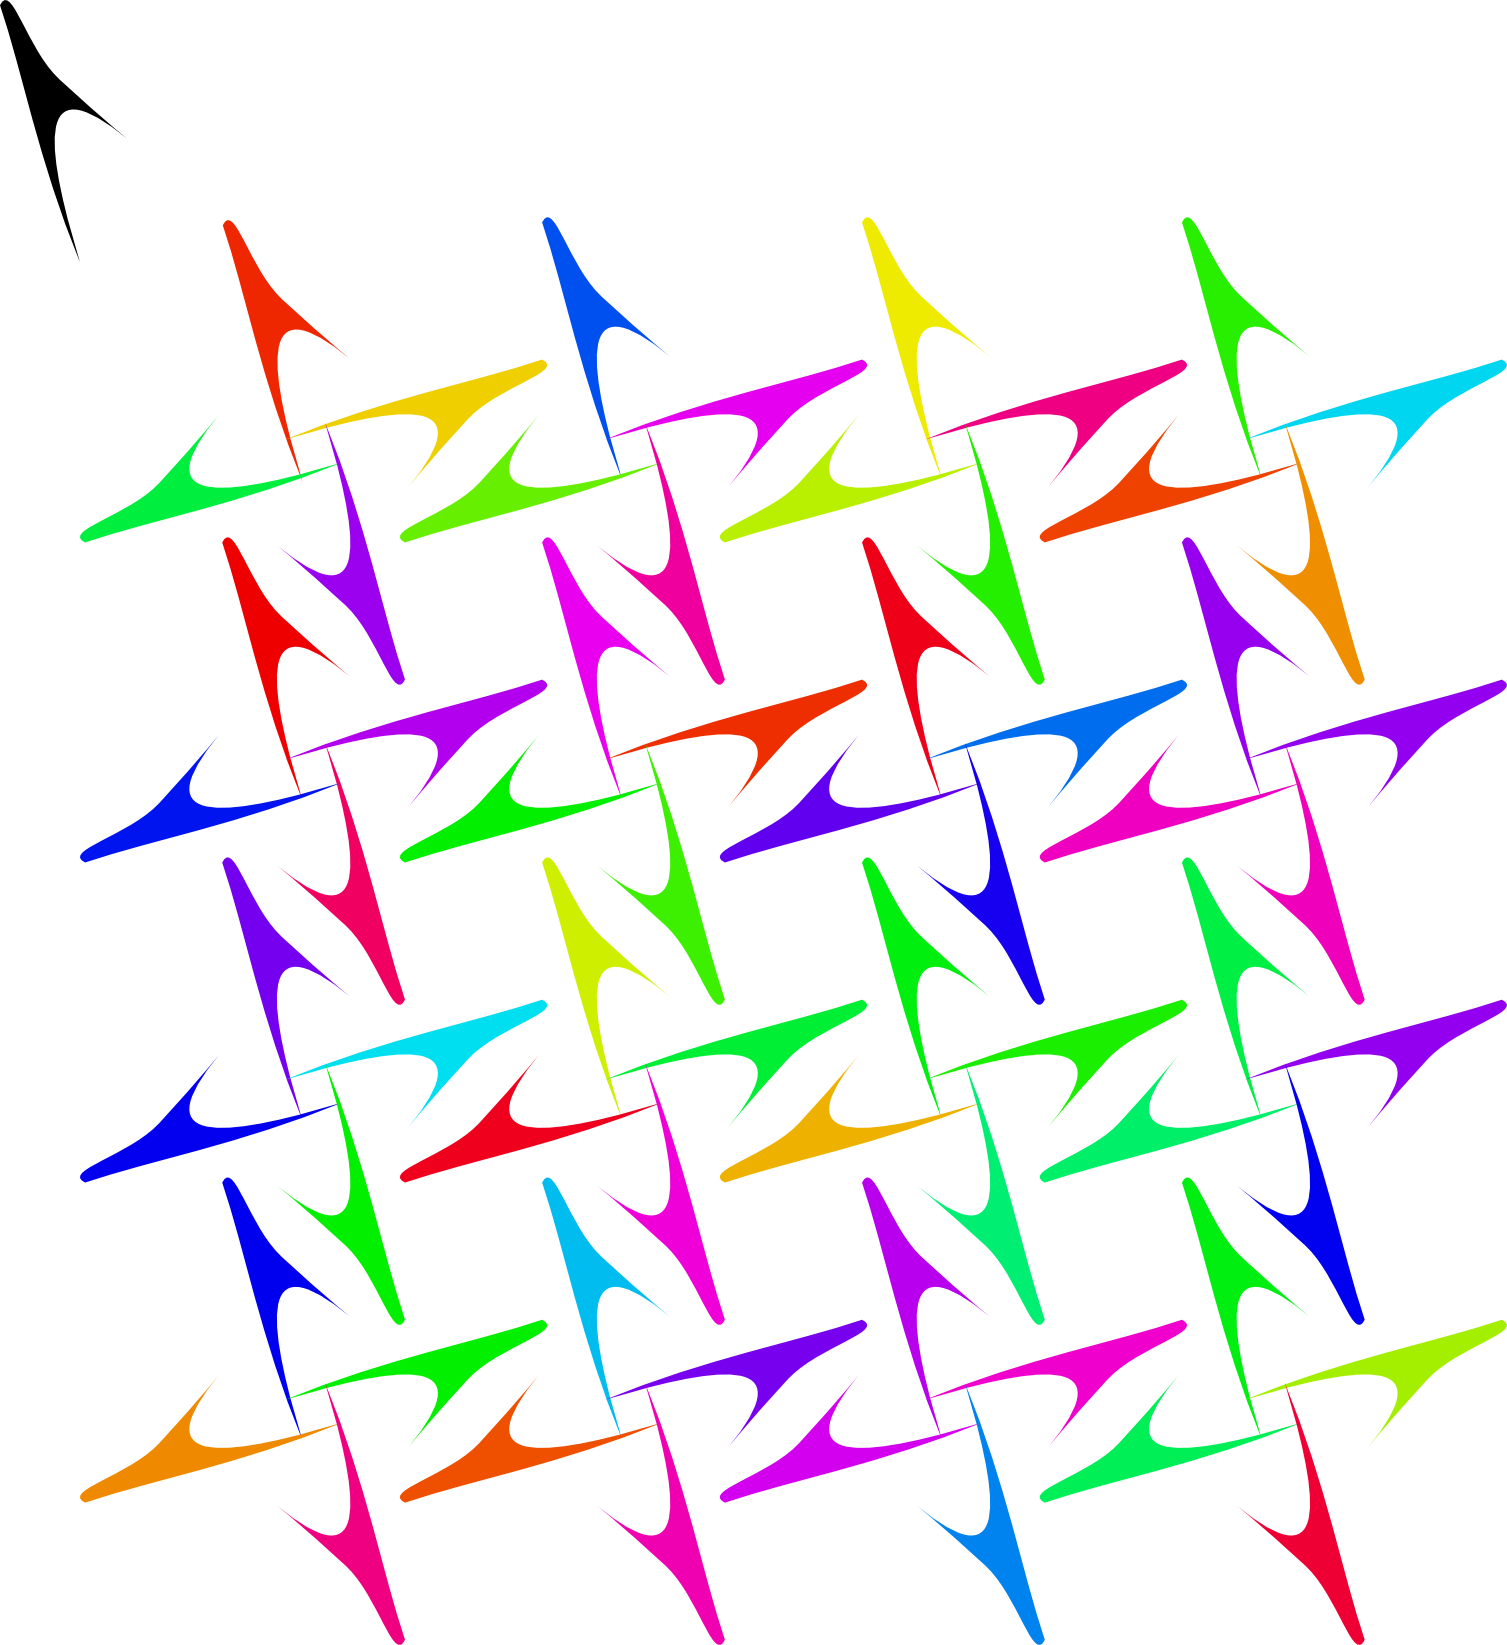 Inscape drawing symmetrical. Creating patterns in inkscape